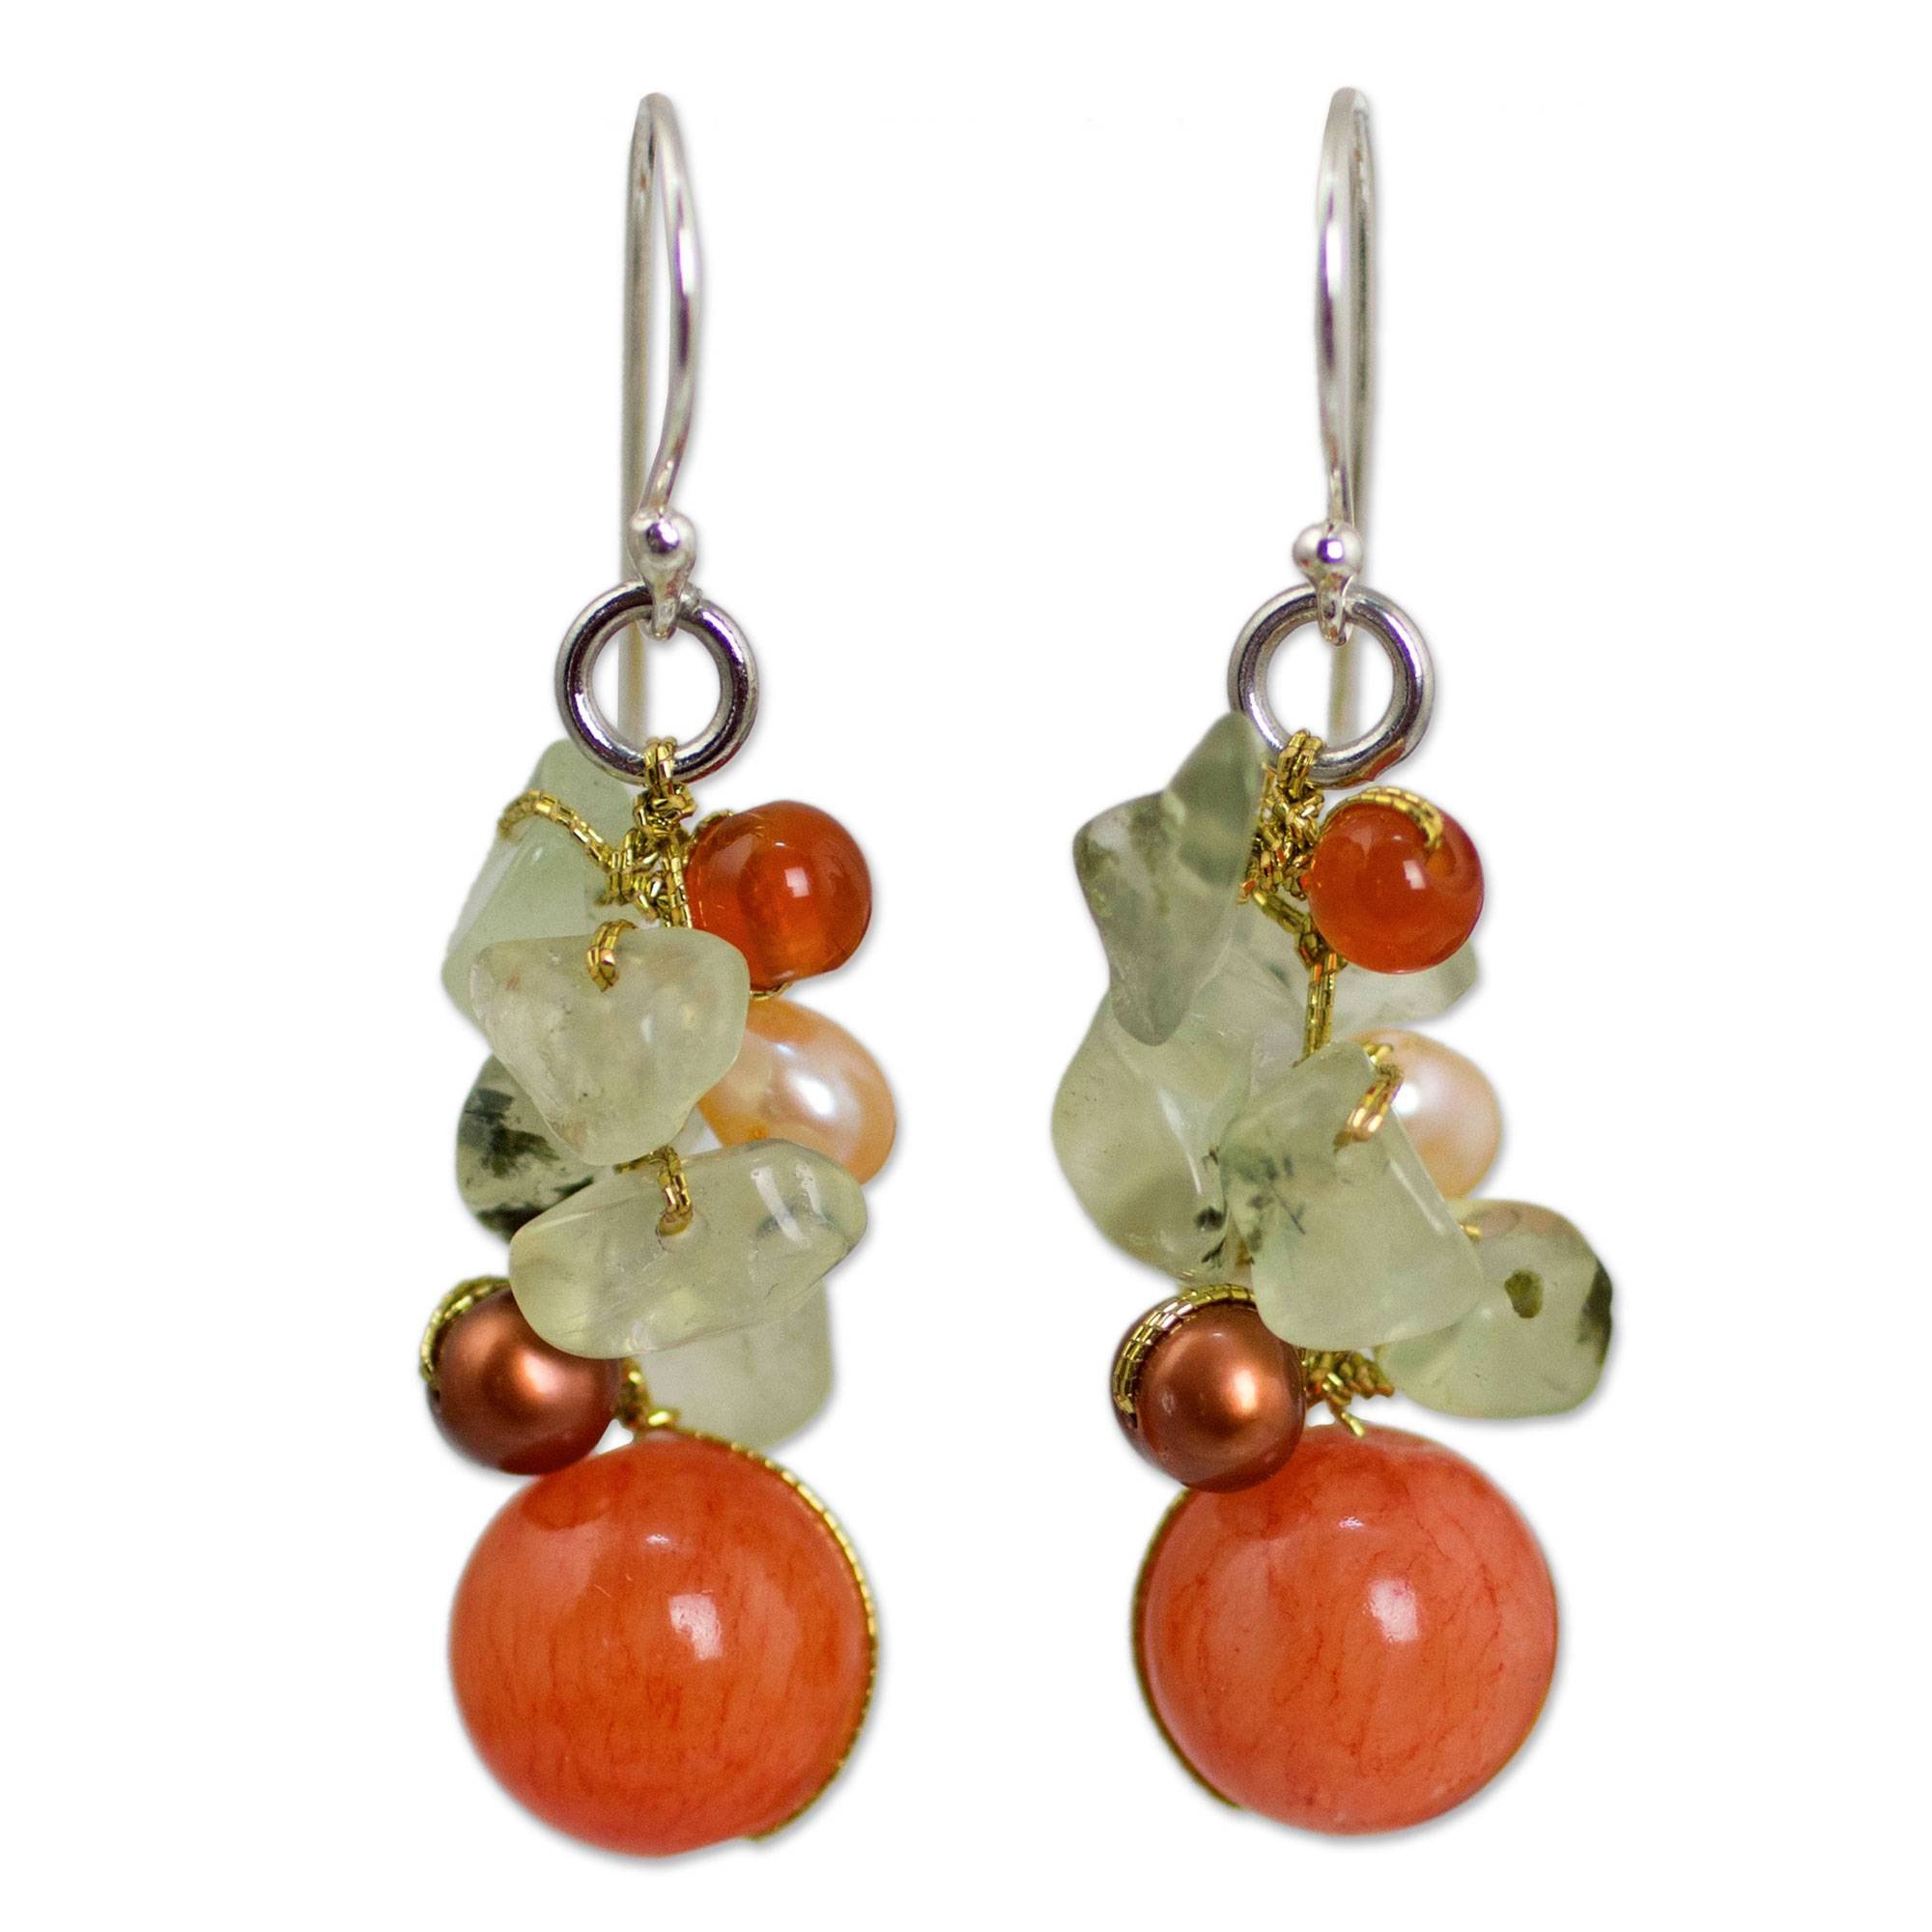 NOVICA Multi-Gem Quartz White Cultured Freshwater Pearl Silver Plated Beaded Earrings 'Spicy Peach'